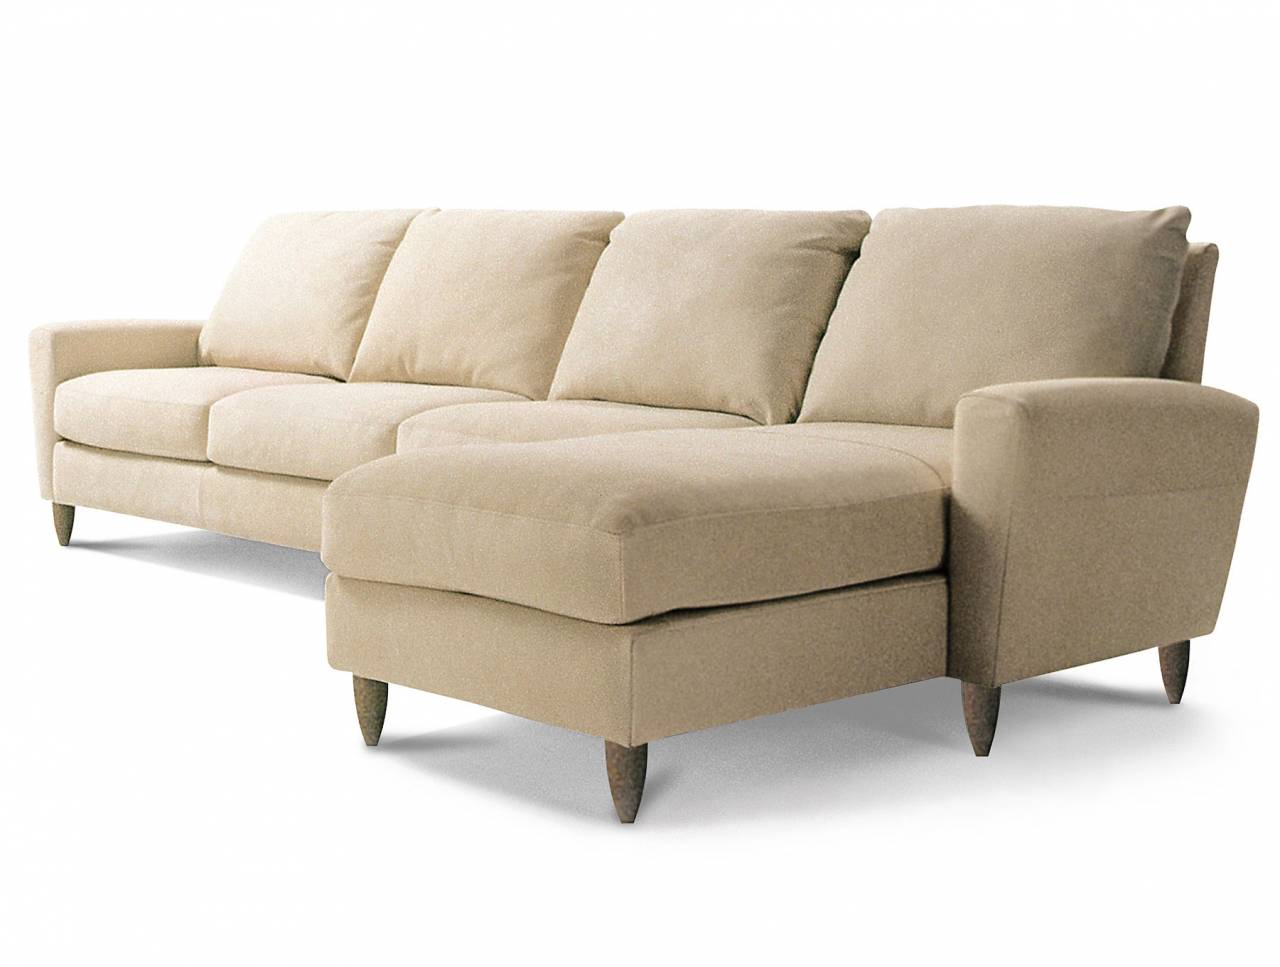 Bennet Sofa - Sofas & Chairs of Minnesota